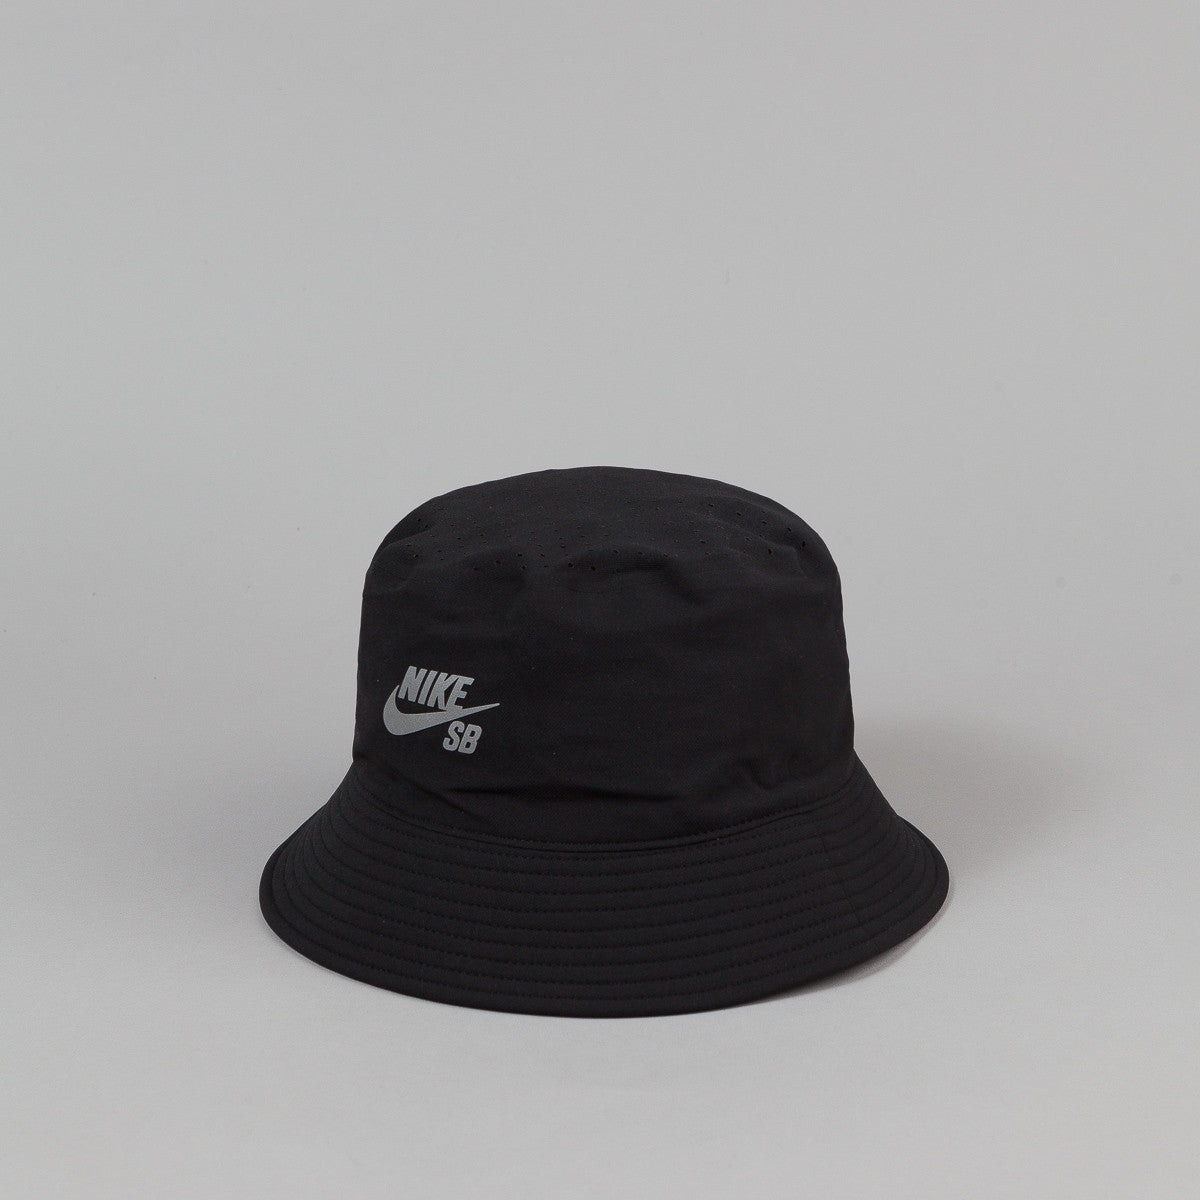 Nike SB Performance Bucket Hat